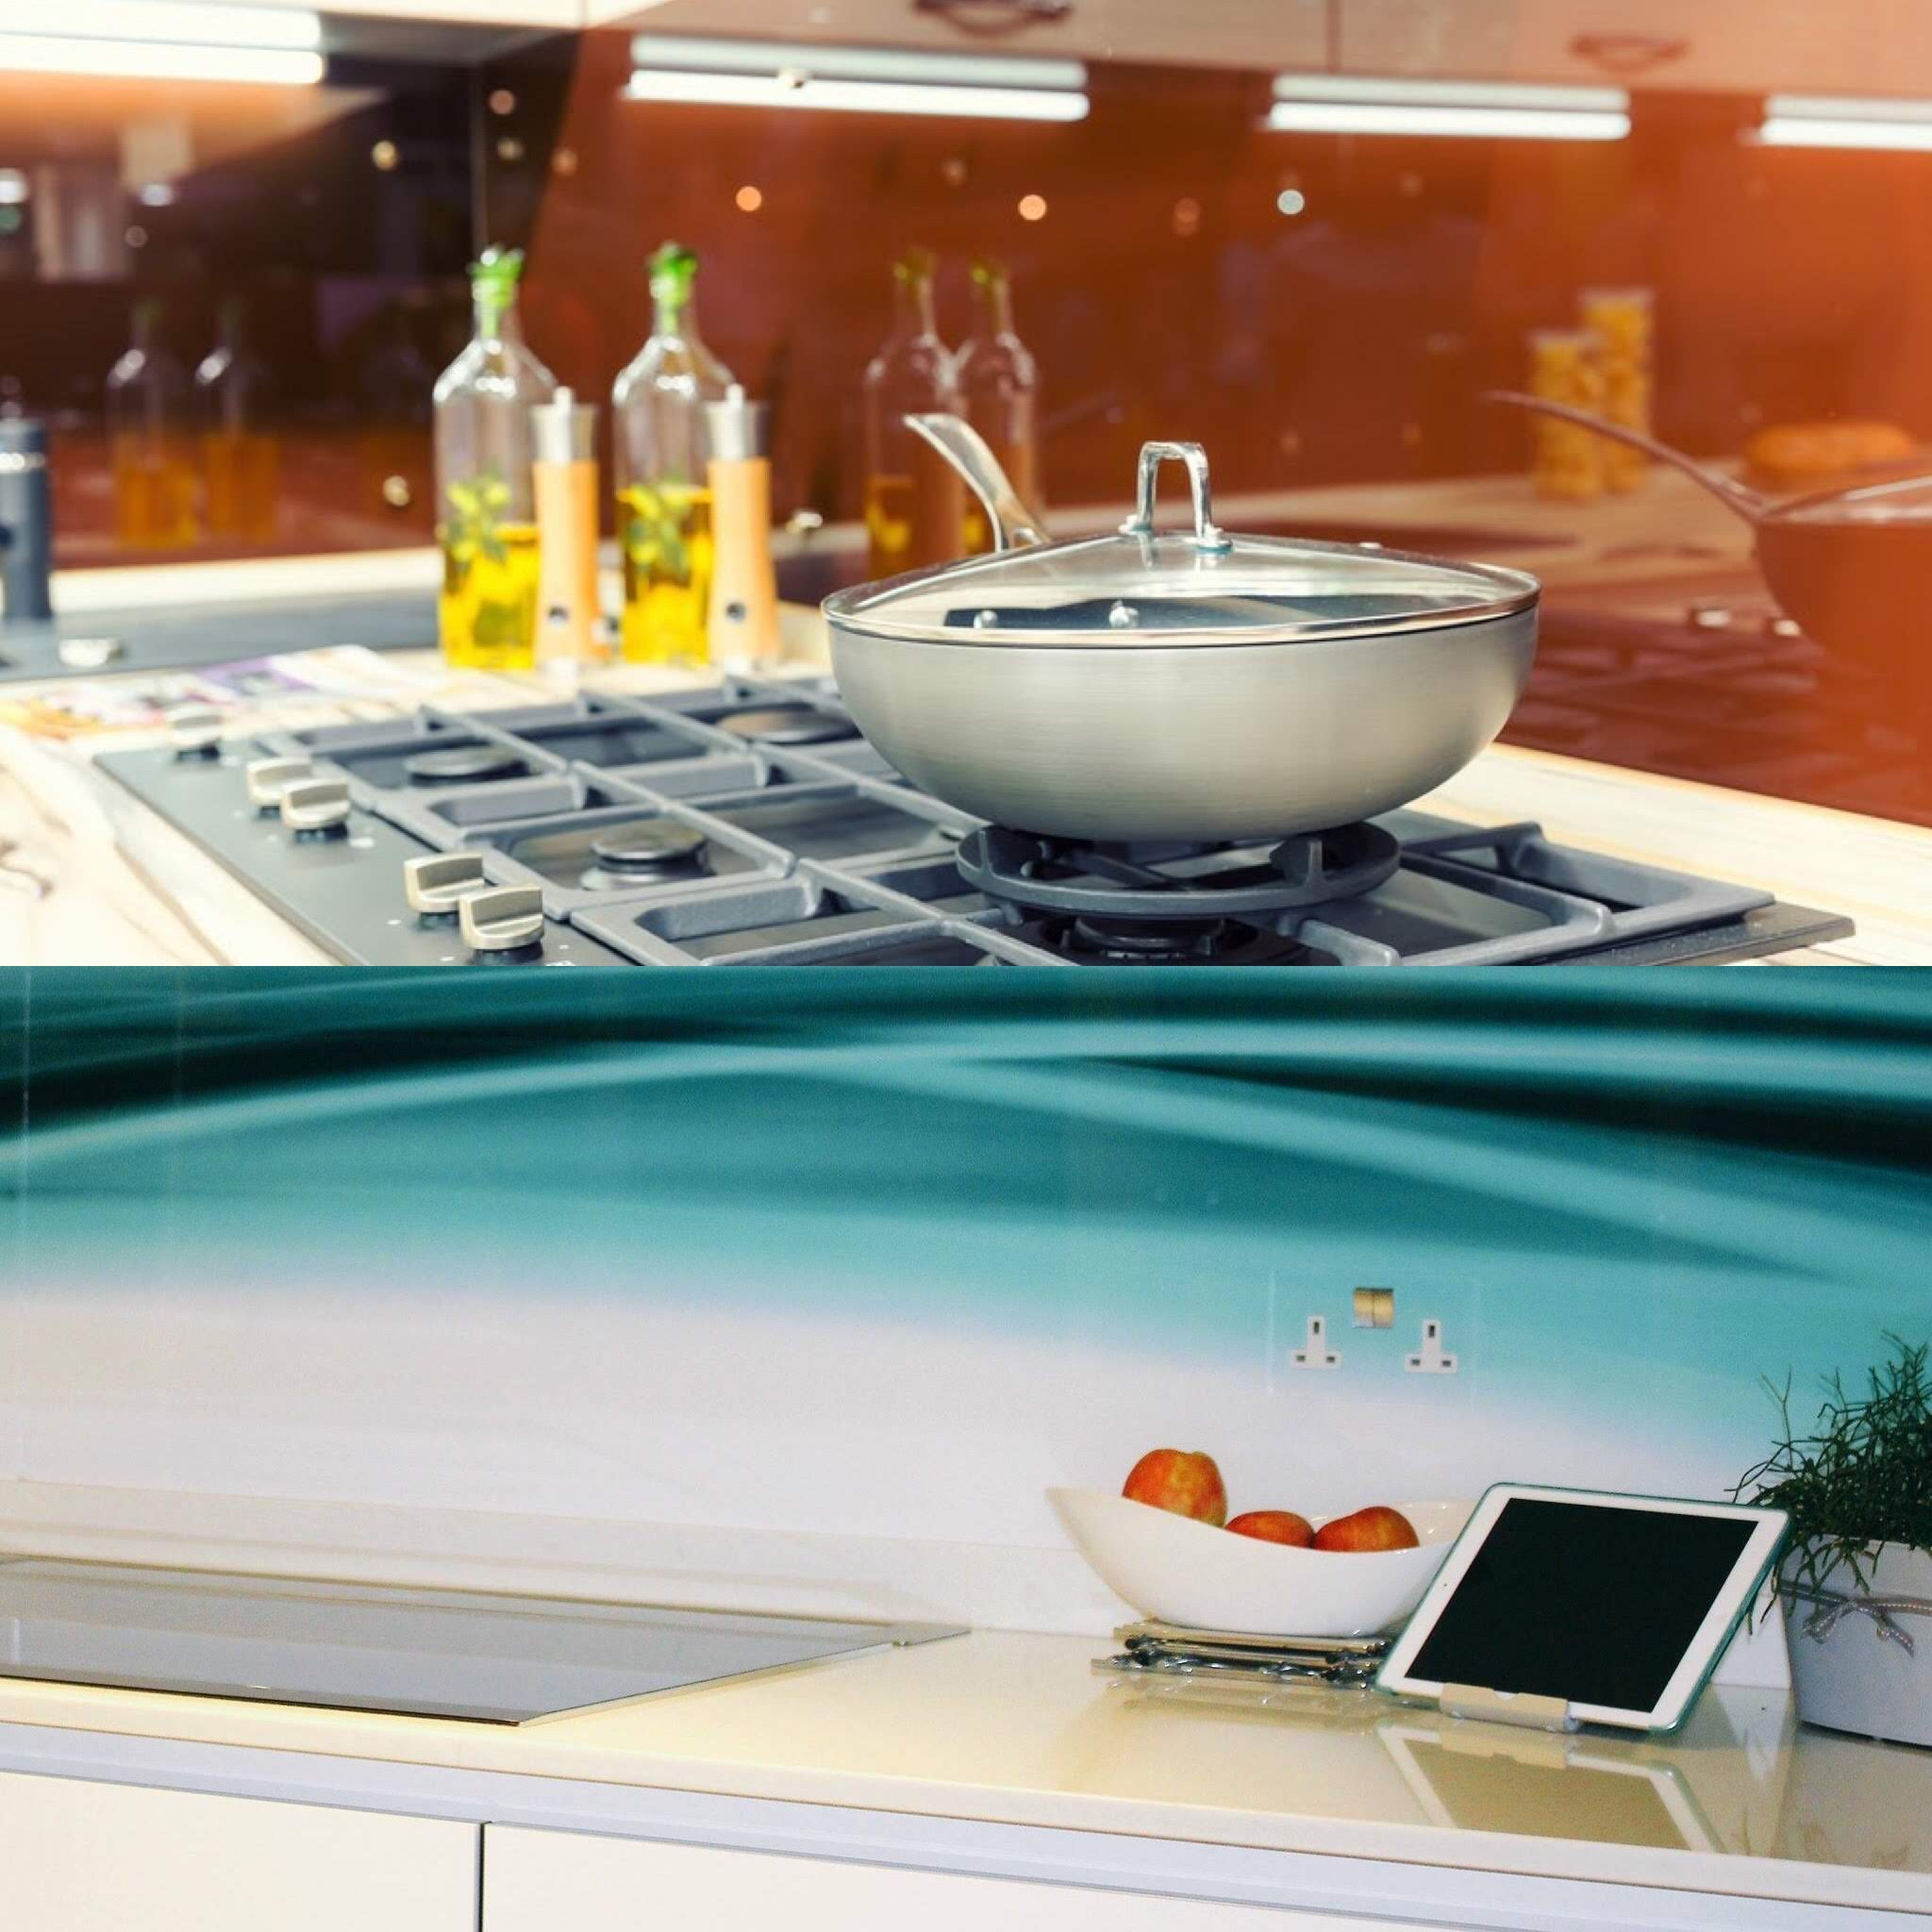 Examples of acrylic splashbacks